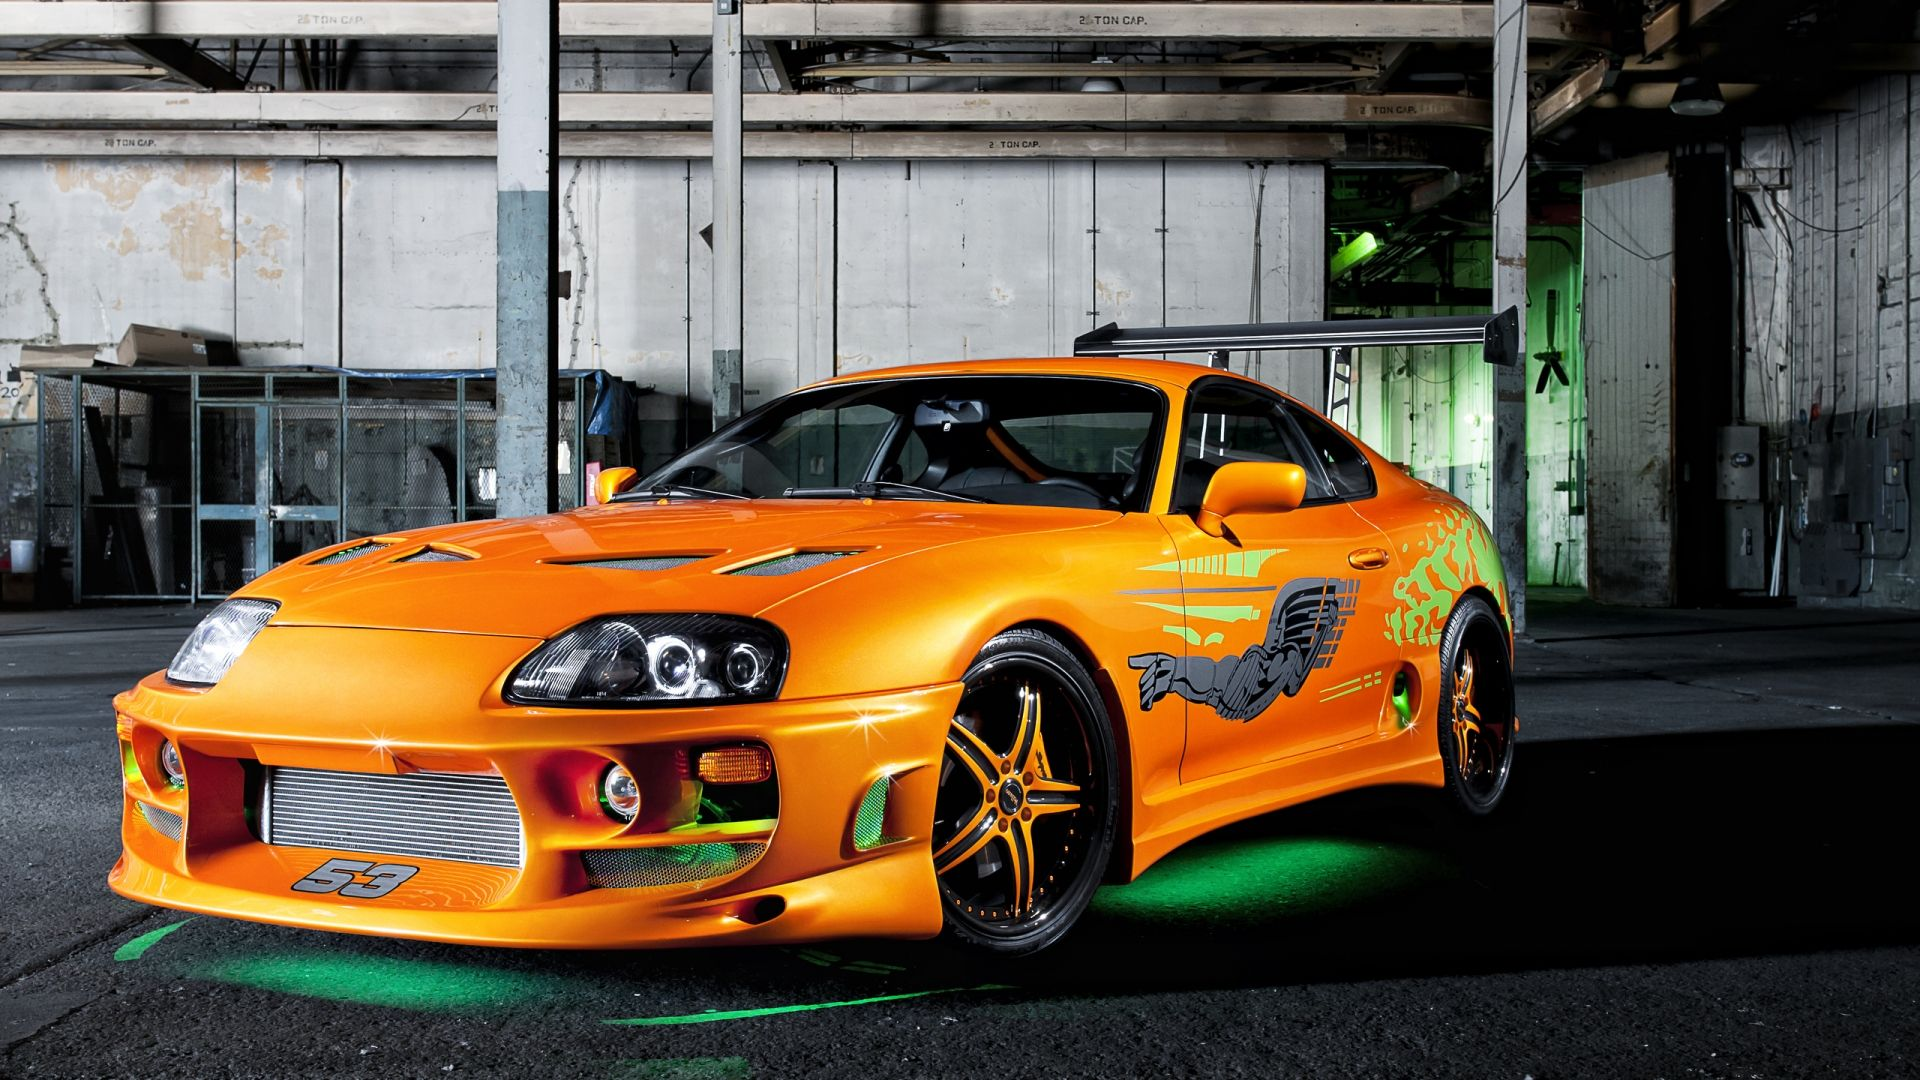 Toyota Supra Wallpaper Hd Toyota Supra Ft Hd Wallpaper Samochody Motocykle